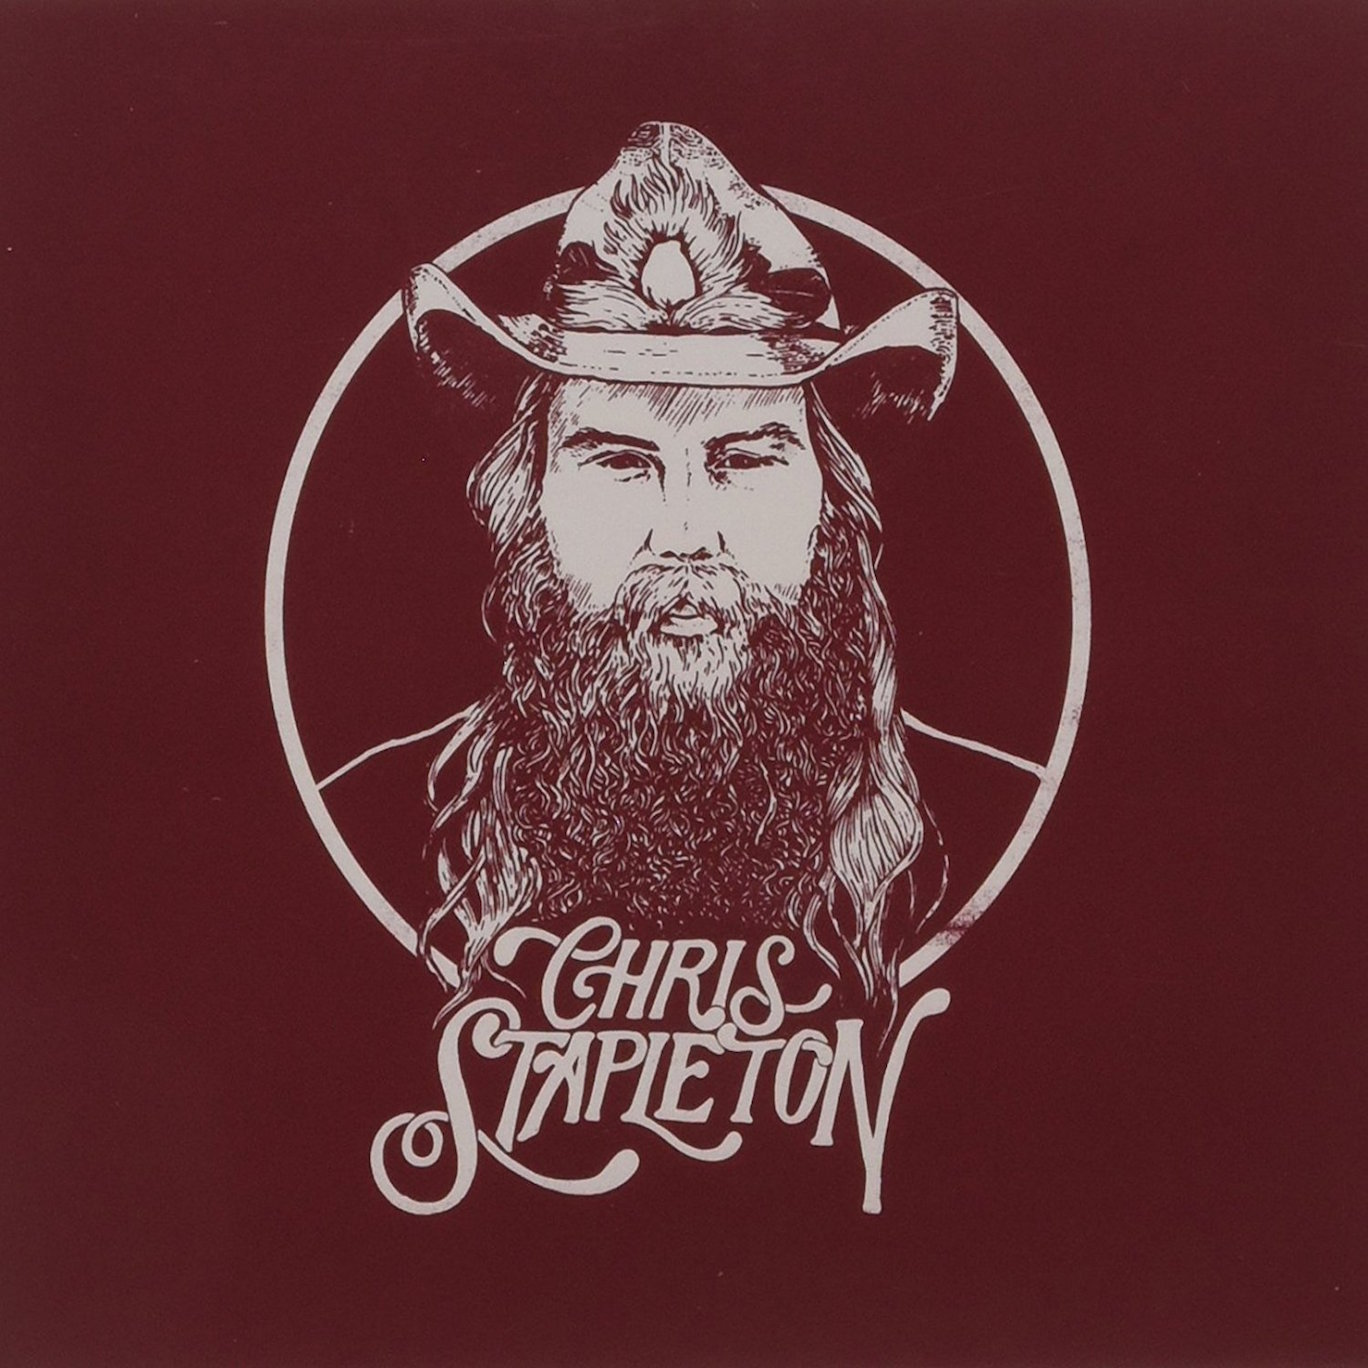 Chris Stapleton - From A Room Vol 2.jpg